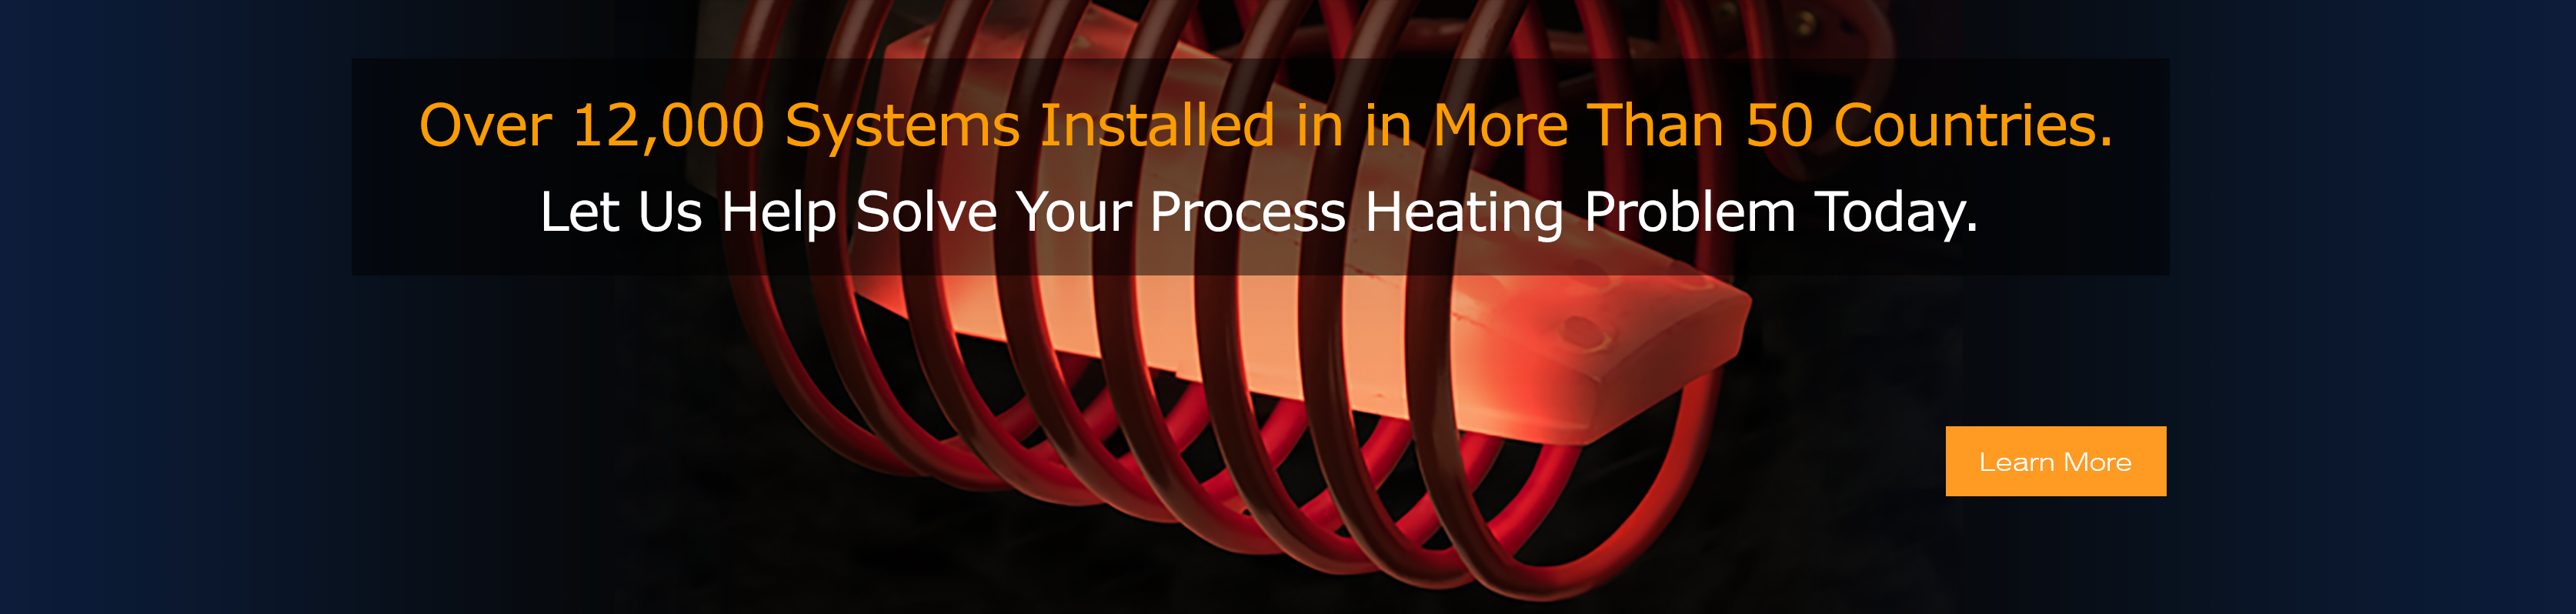 Let us help solve your process heating problems today